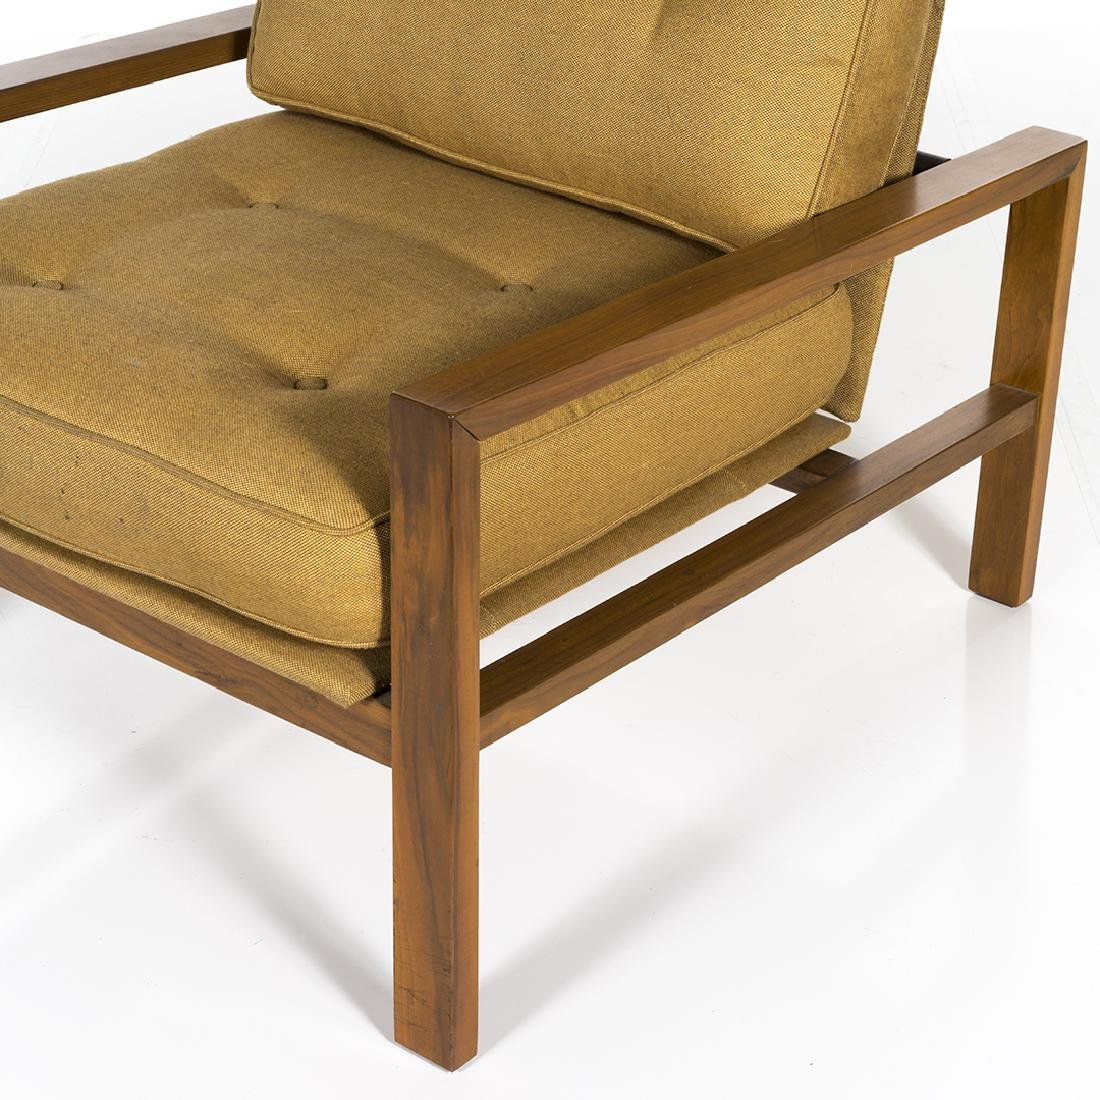 Van Keppel and Green Prototype Lounge Chair - 5